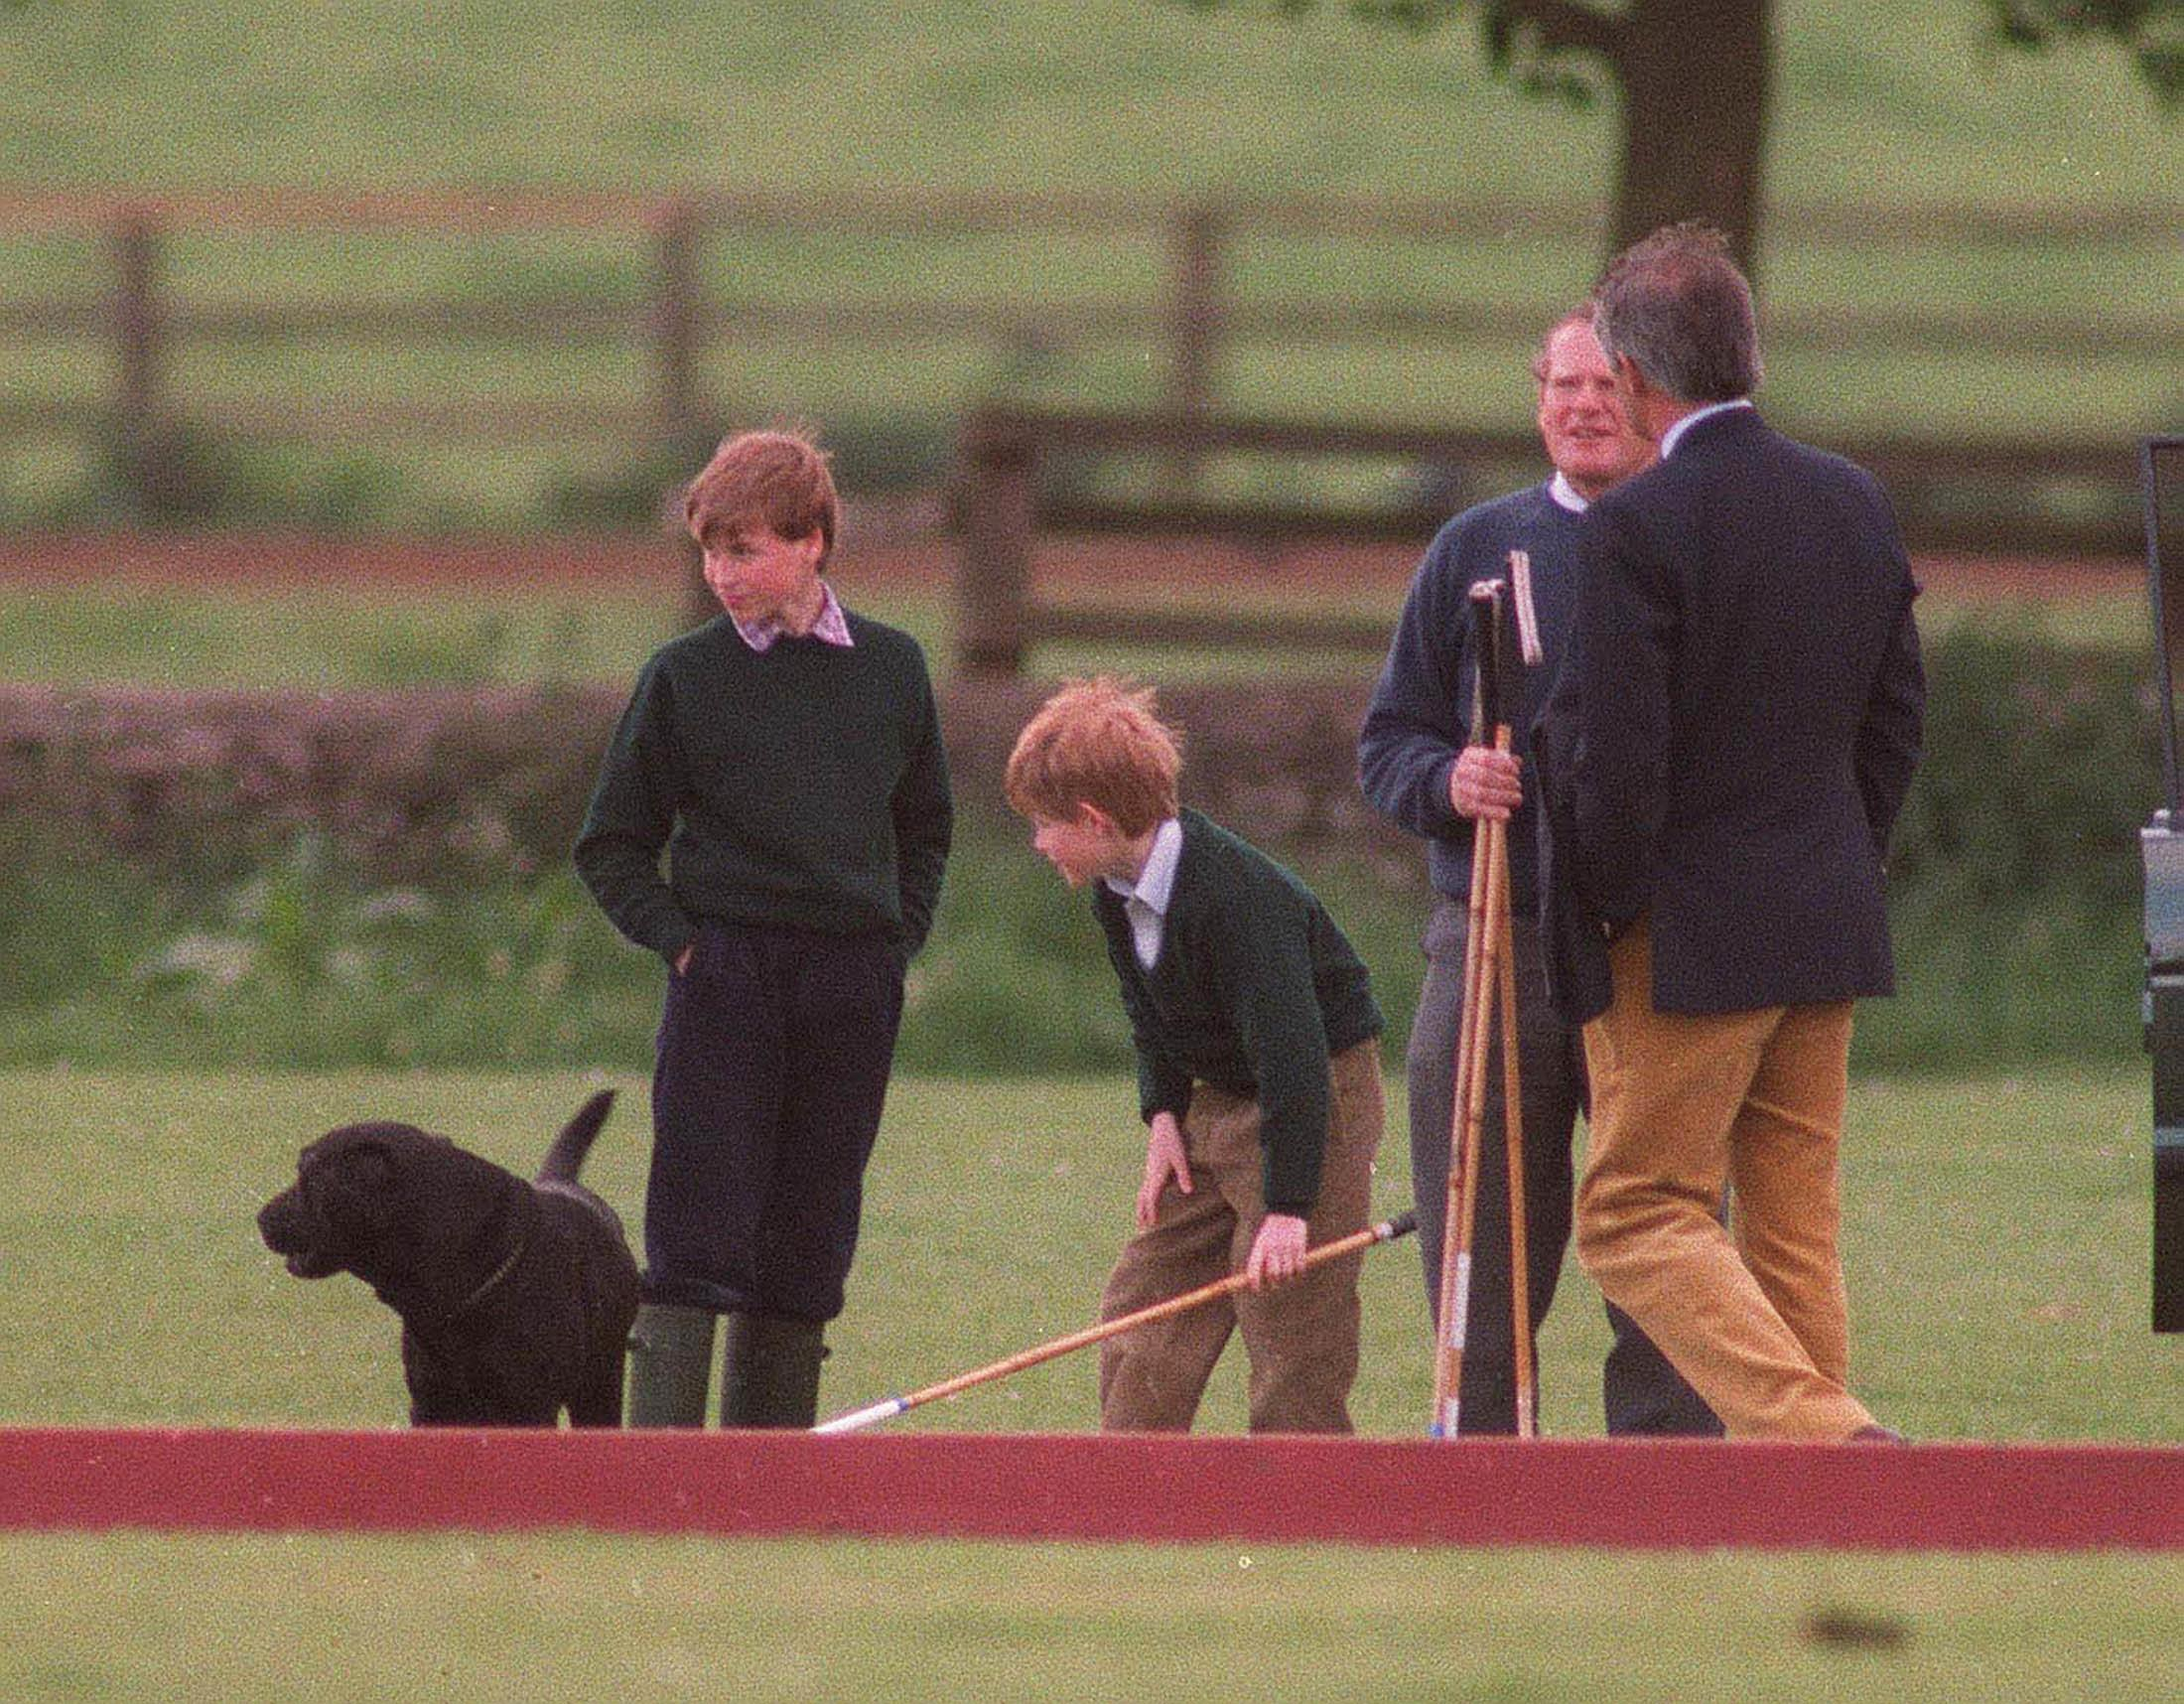 CIRENCESTER - MAY: (FILE PHOTO) Prince William and Prince Harry play around together at Cirencester Park polo club in May, 1995 in Cirencester, England.  (Photo by Anwar Hussein/Getty Images)